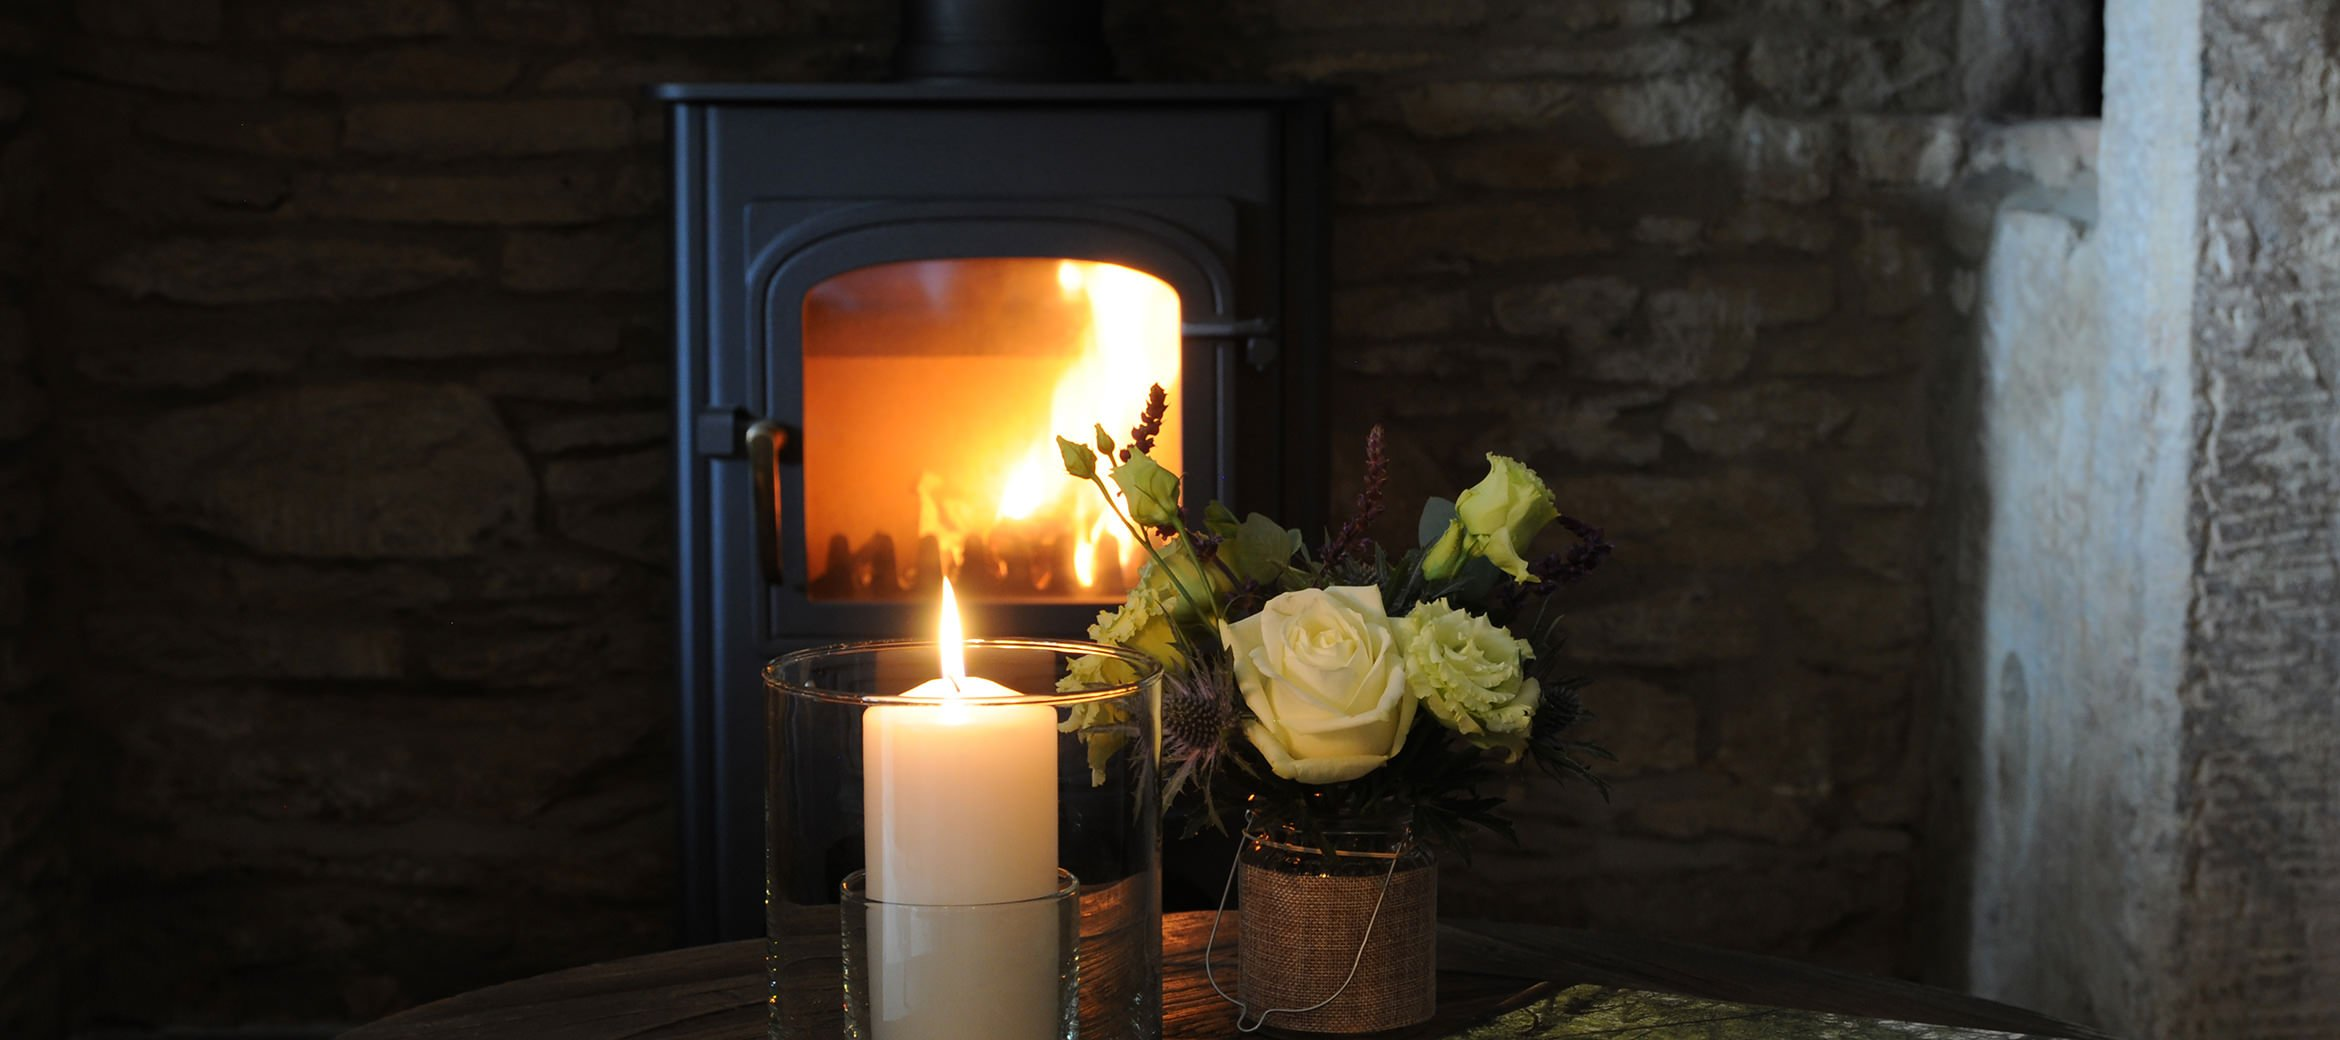 owl-cottage-luxury-cotswold-cottage-clearview-stove